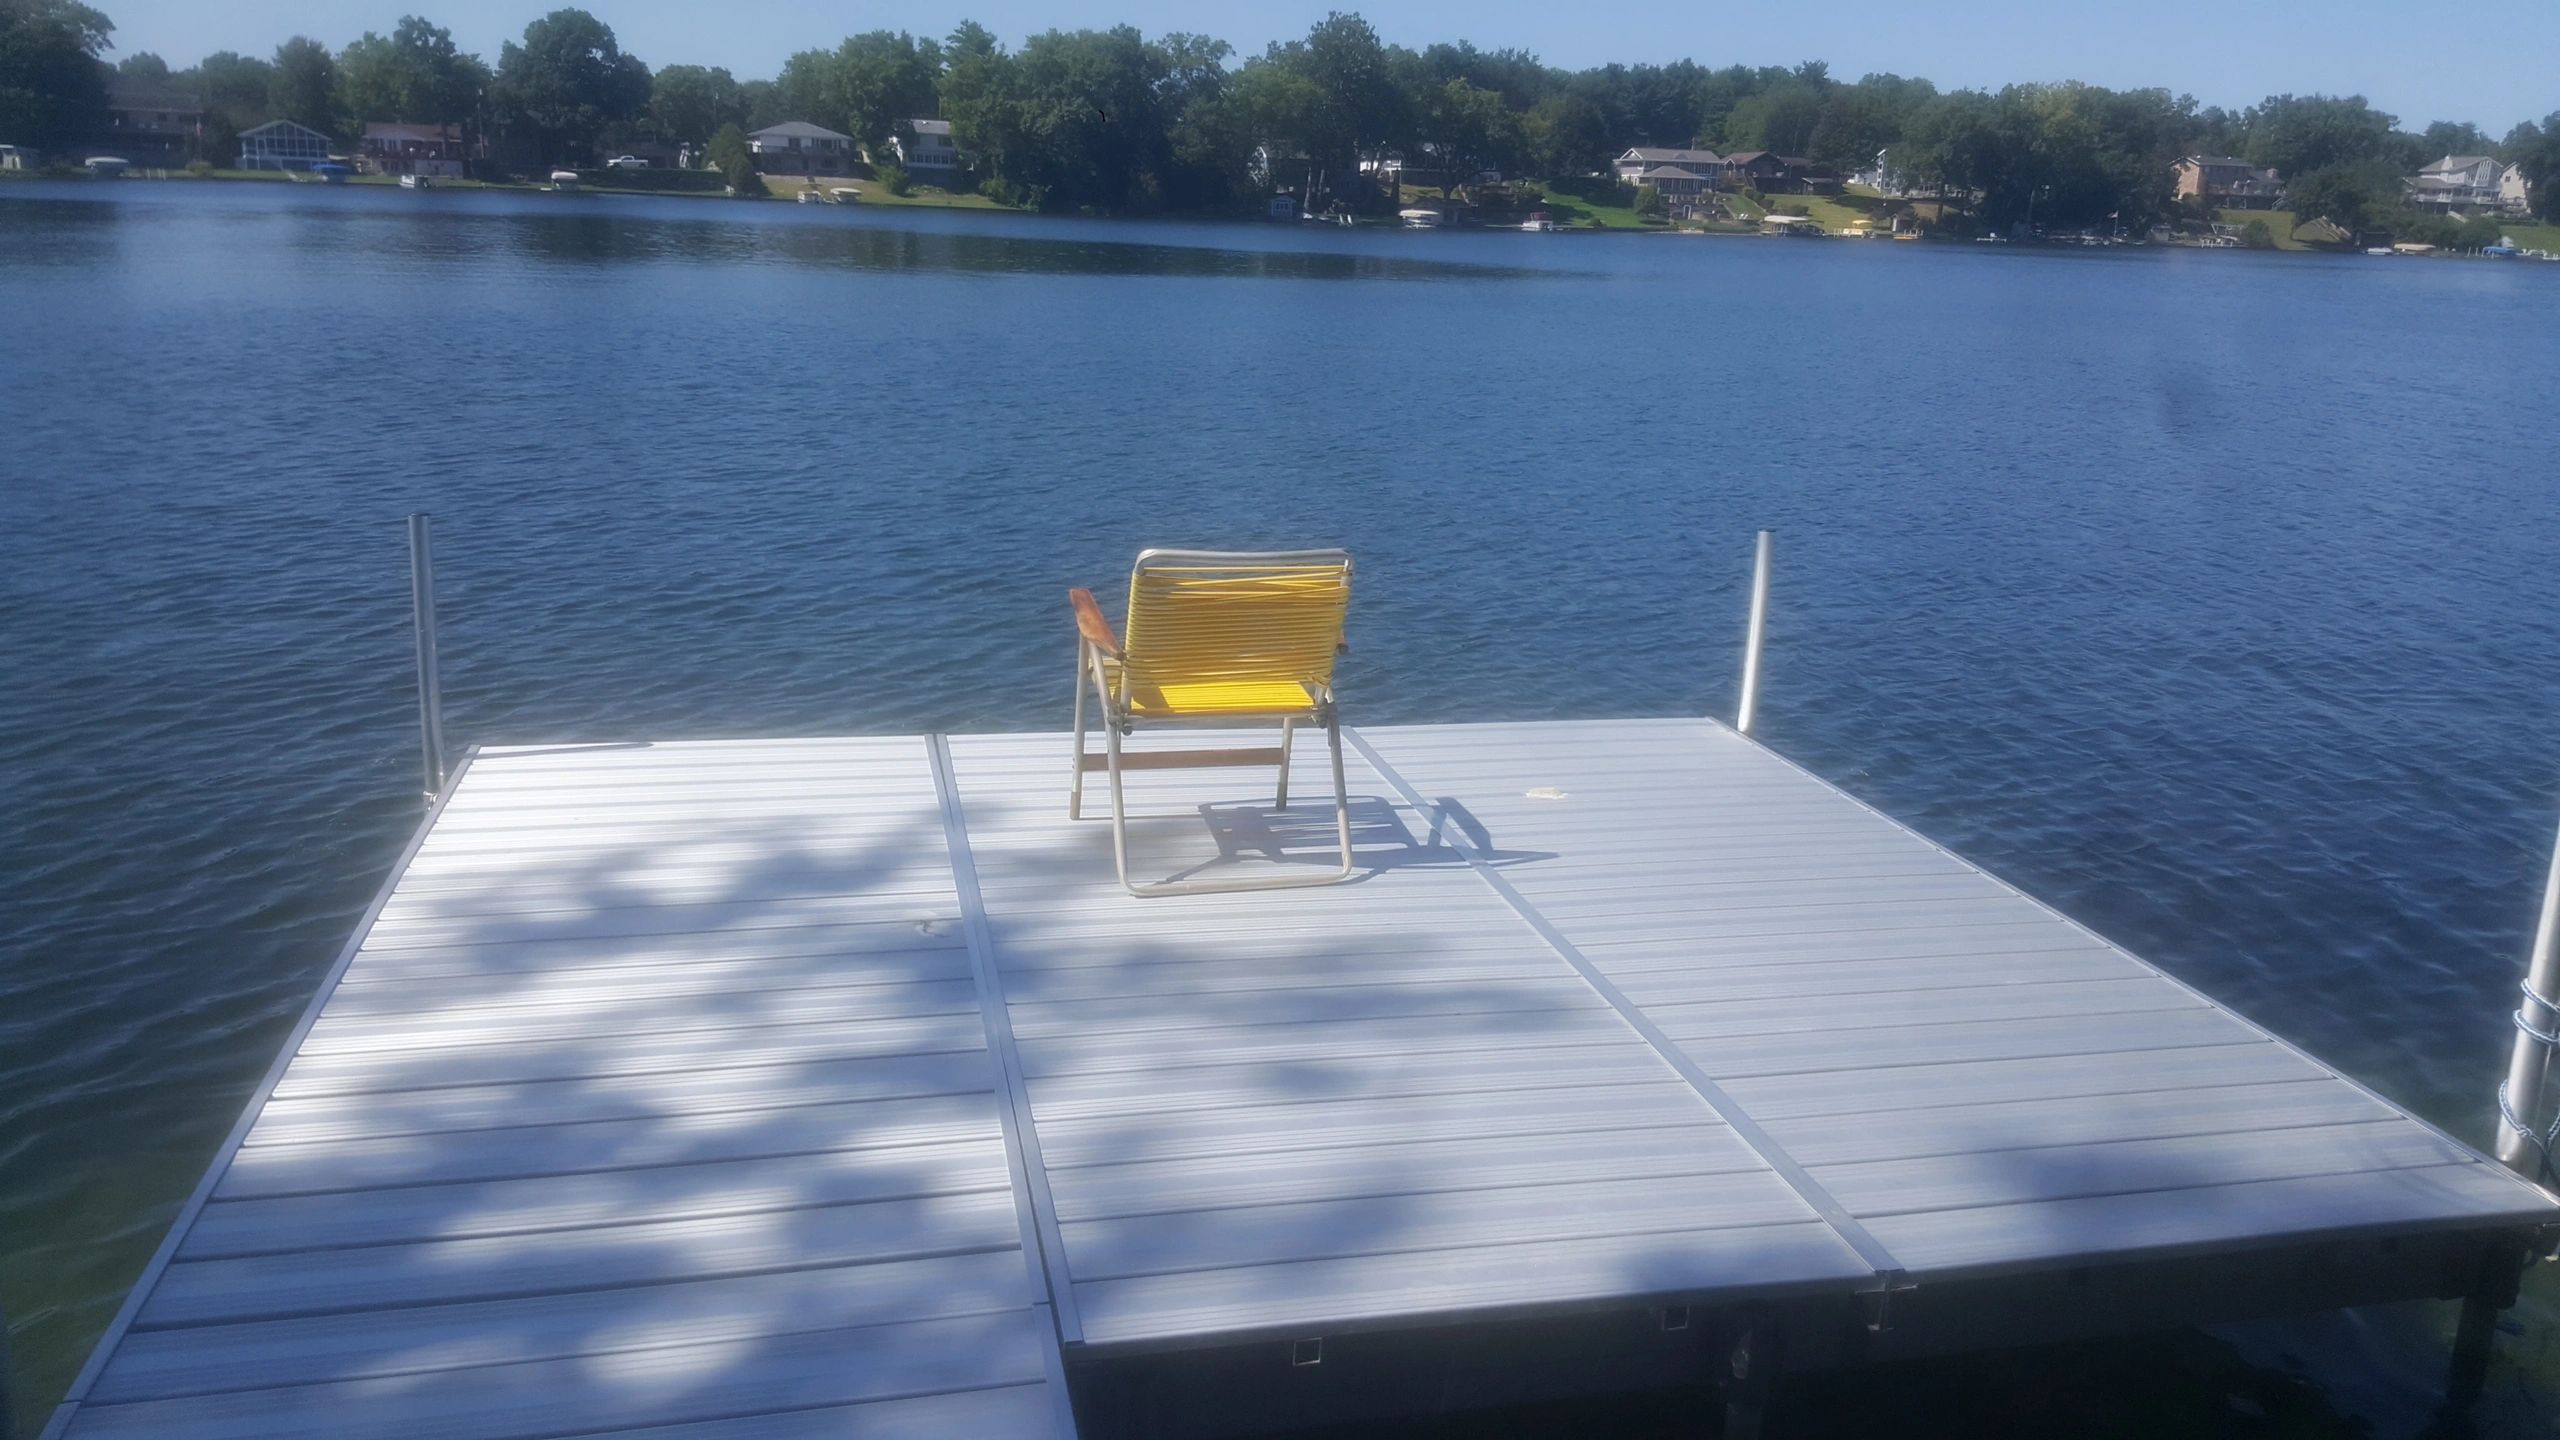 Dock, Pier - Outland Marine Products - Fort Wayne, Indiana